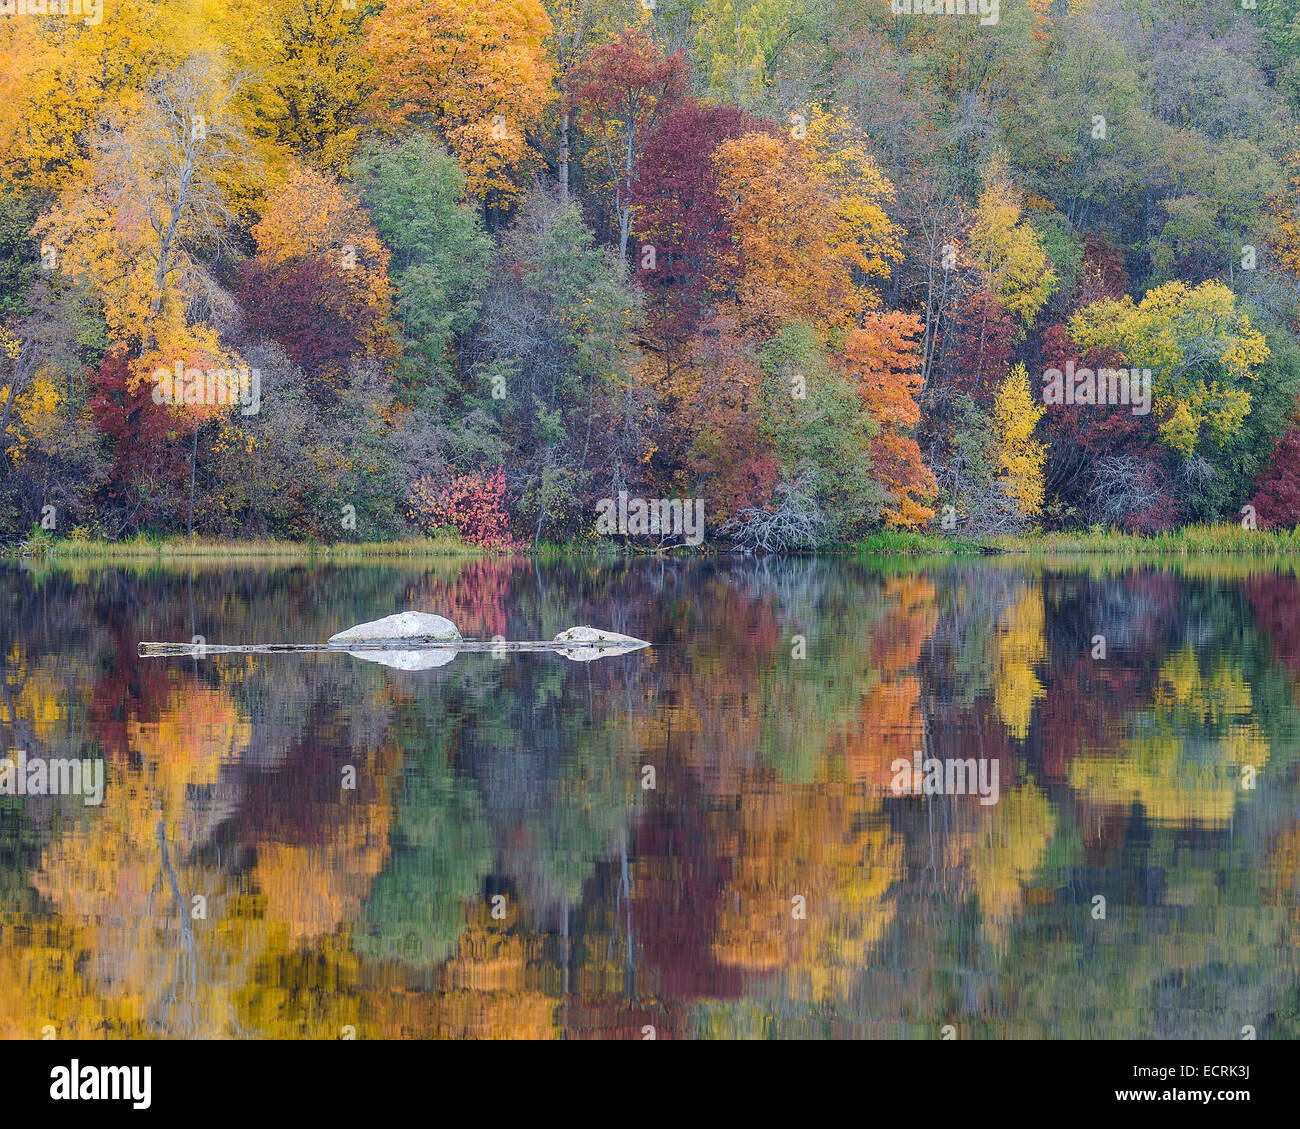 Rocks and an Autumn forest reflected in a river. - Stock Image